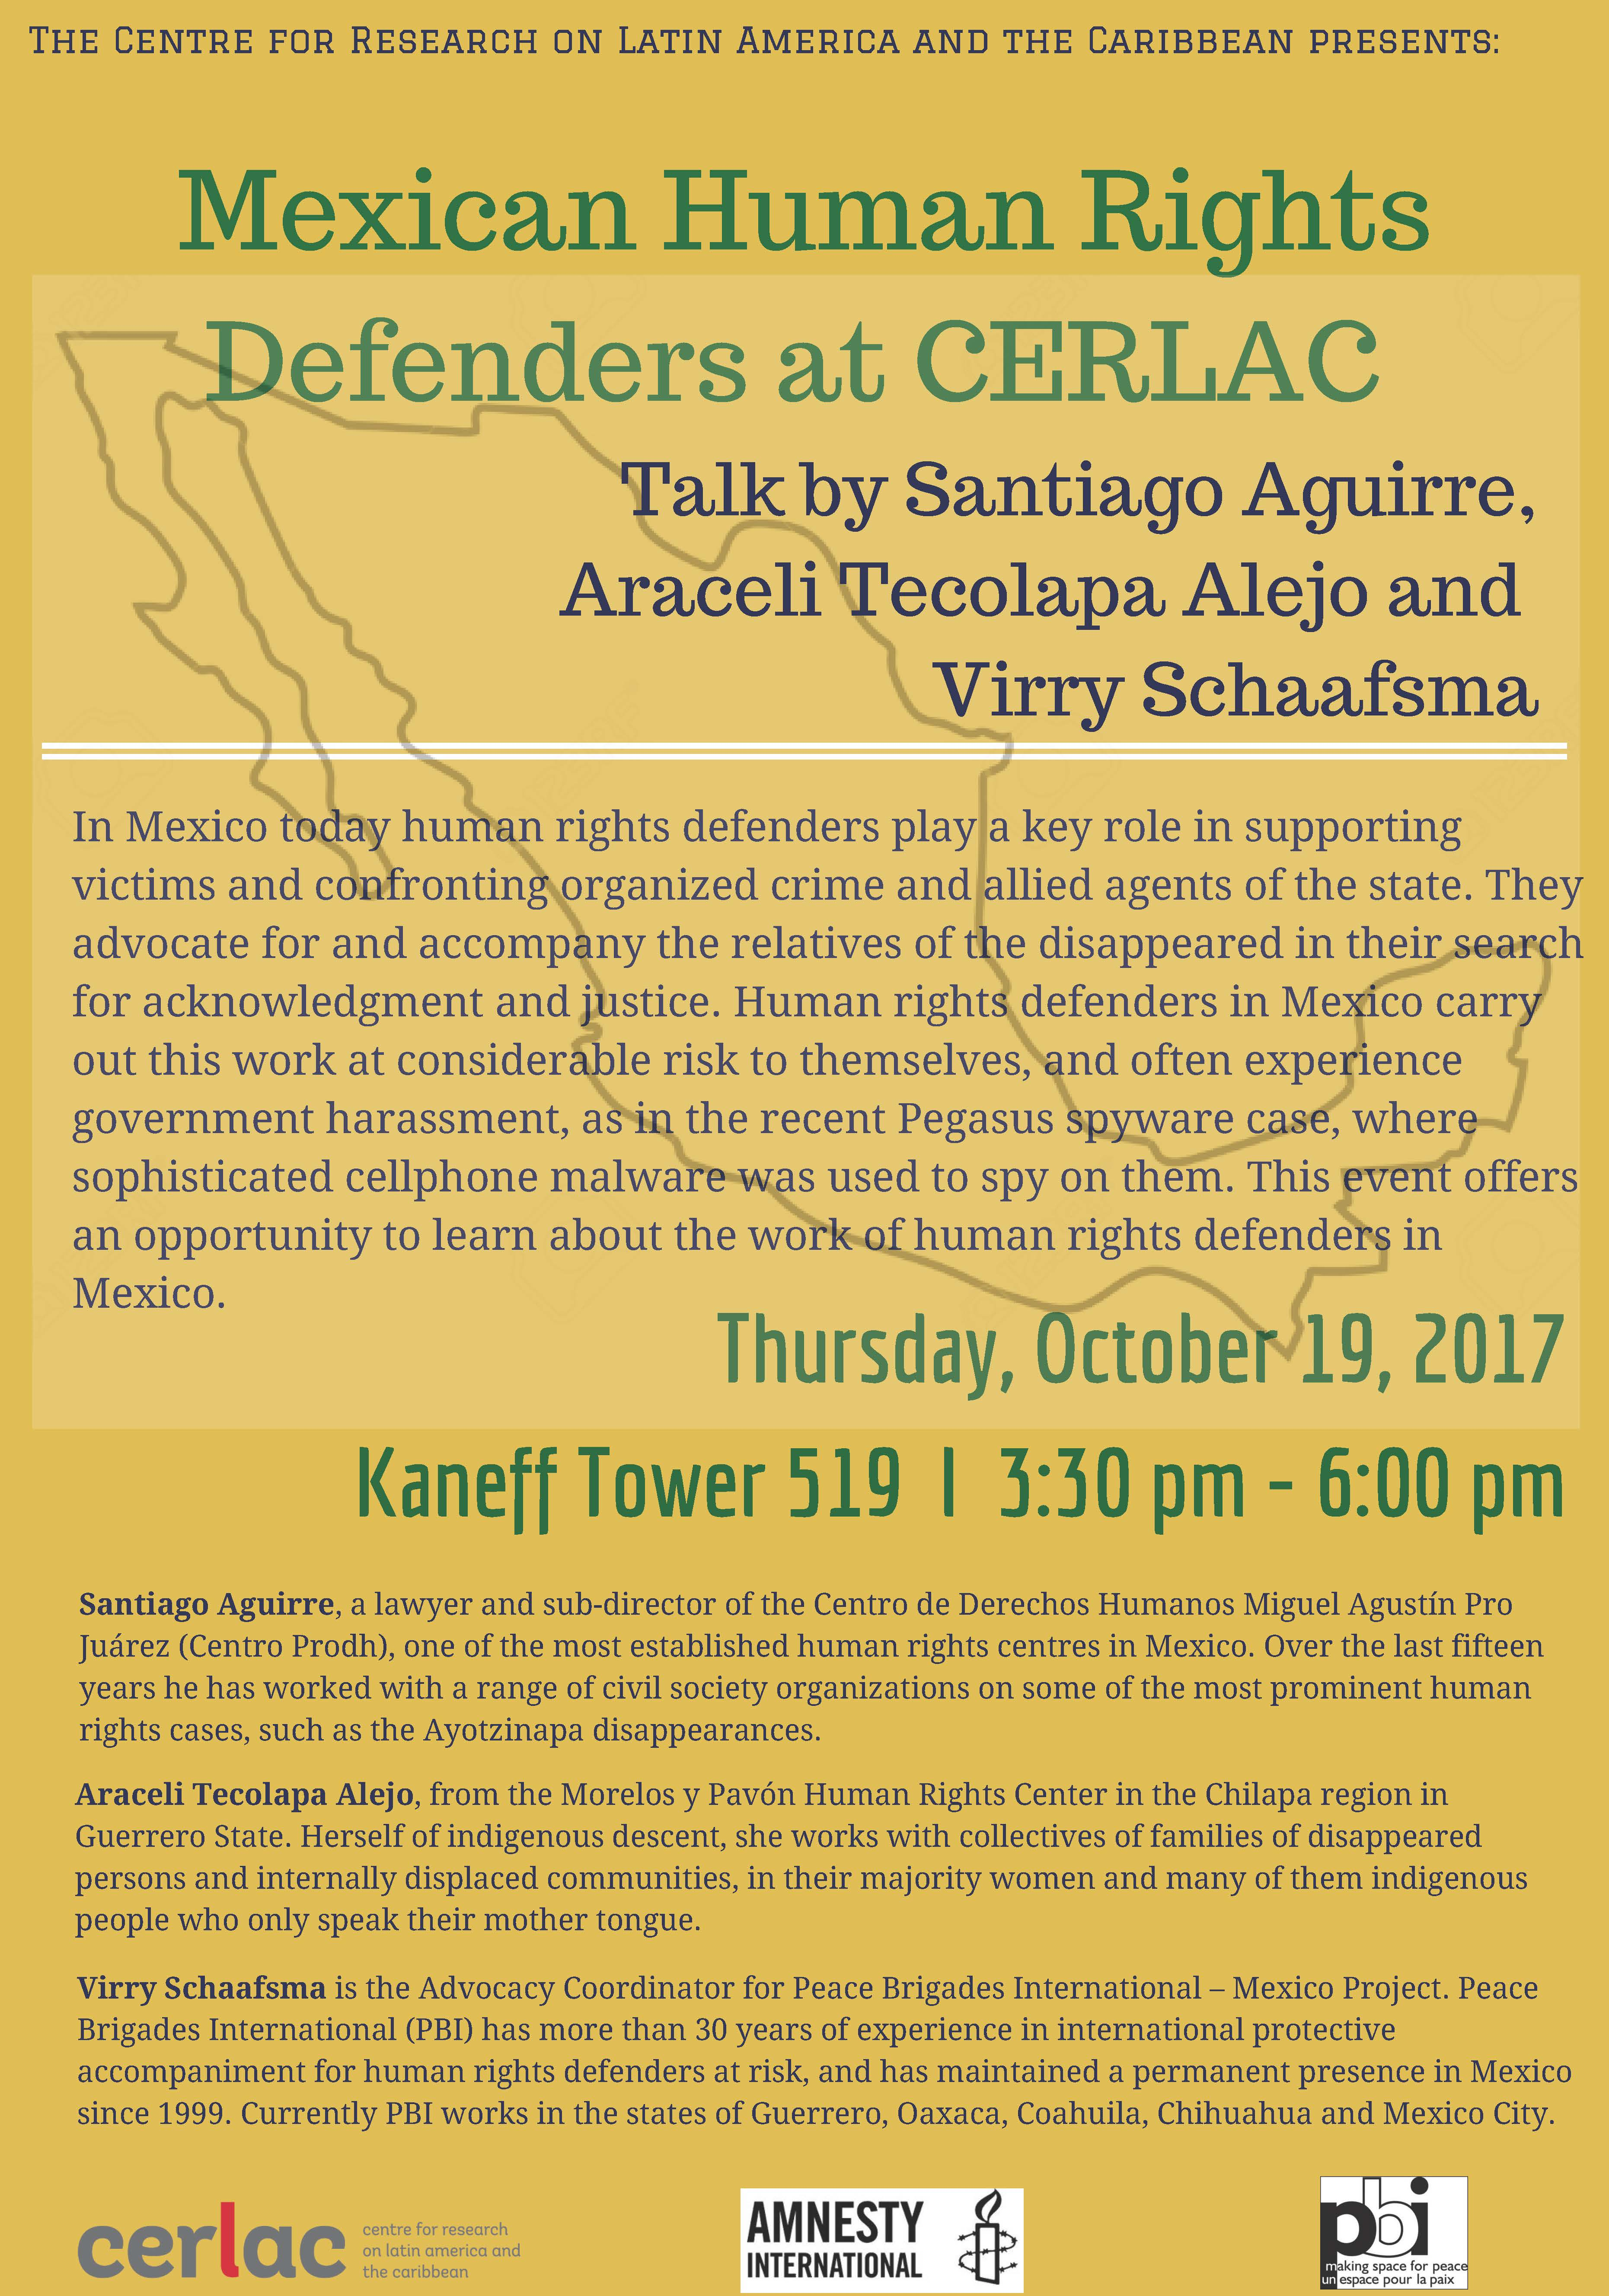 Mexican Human Rights Defenders at CERLAC @ Kaneff Tower 519